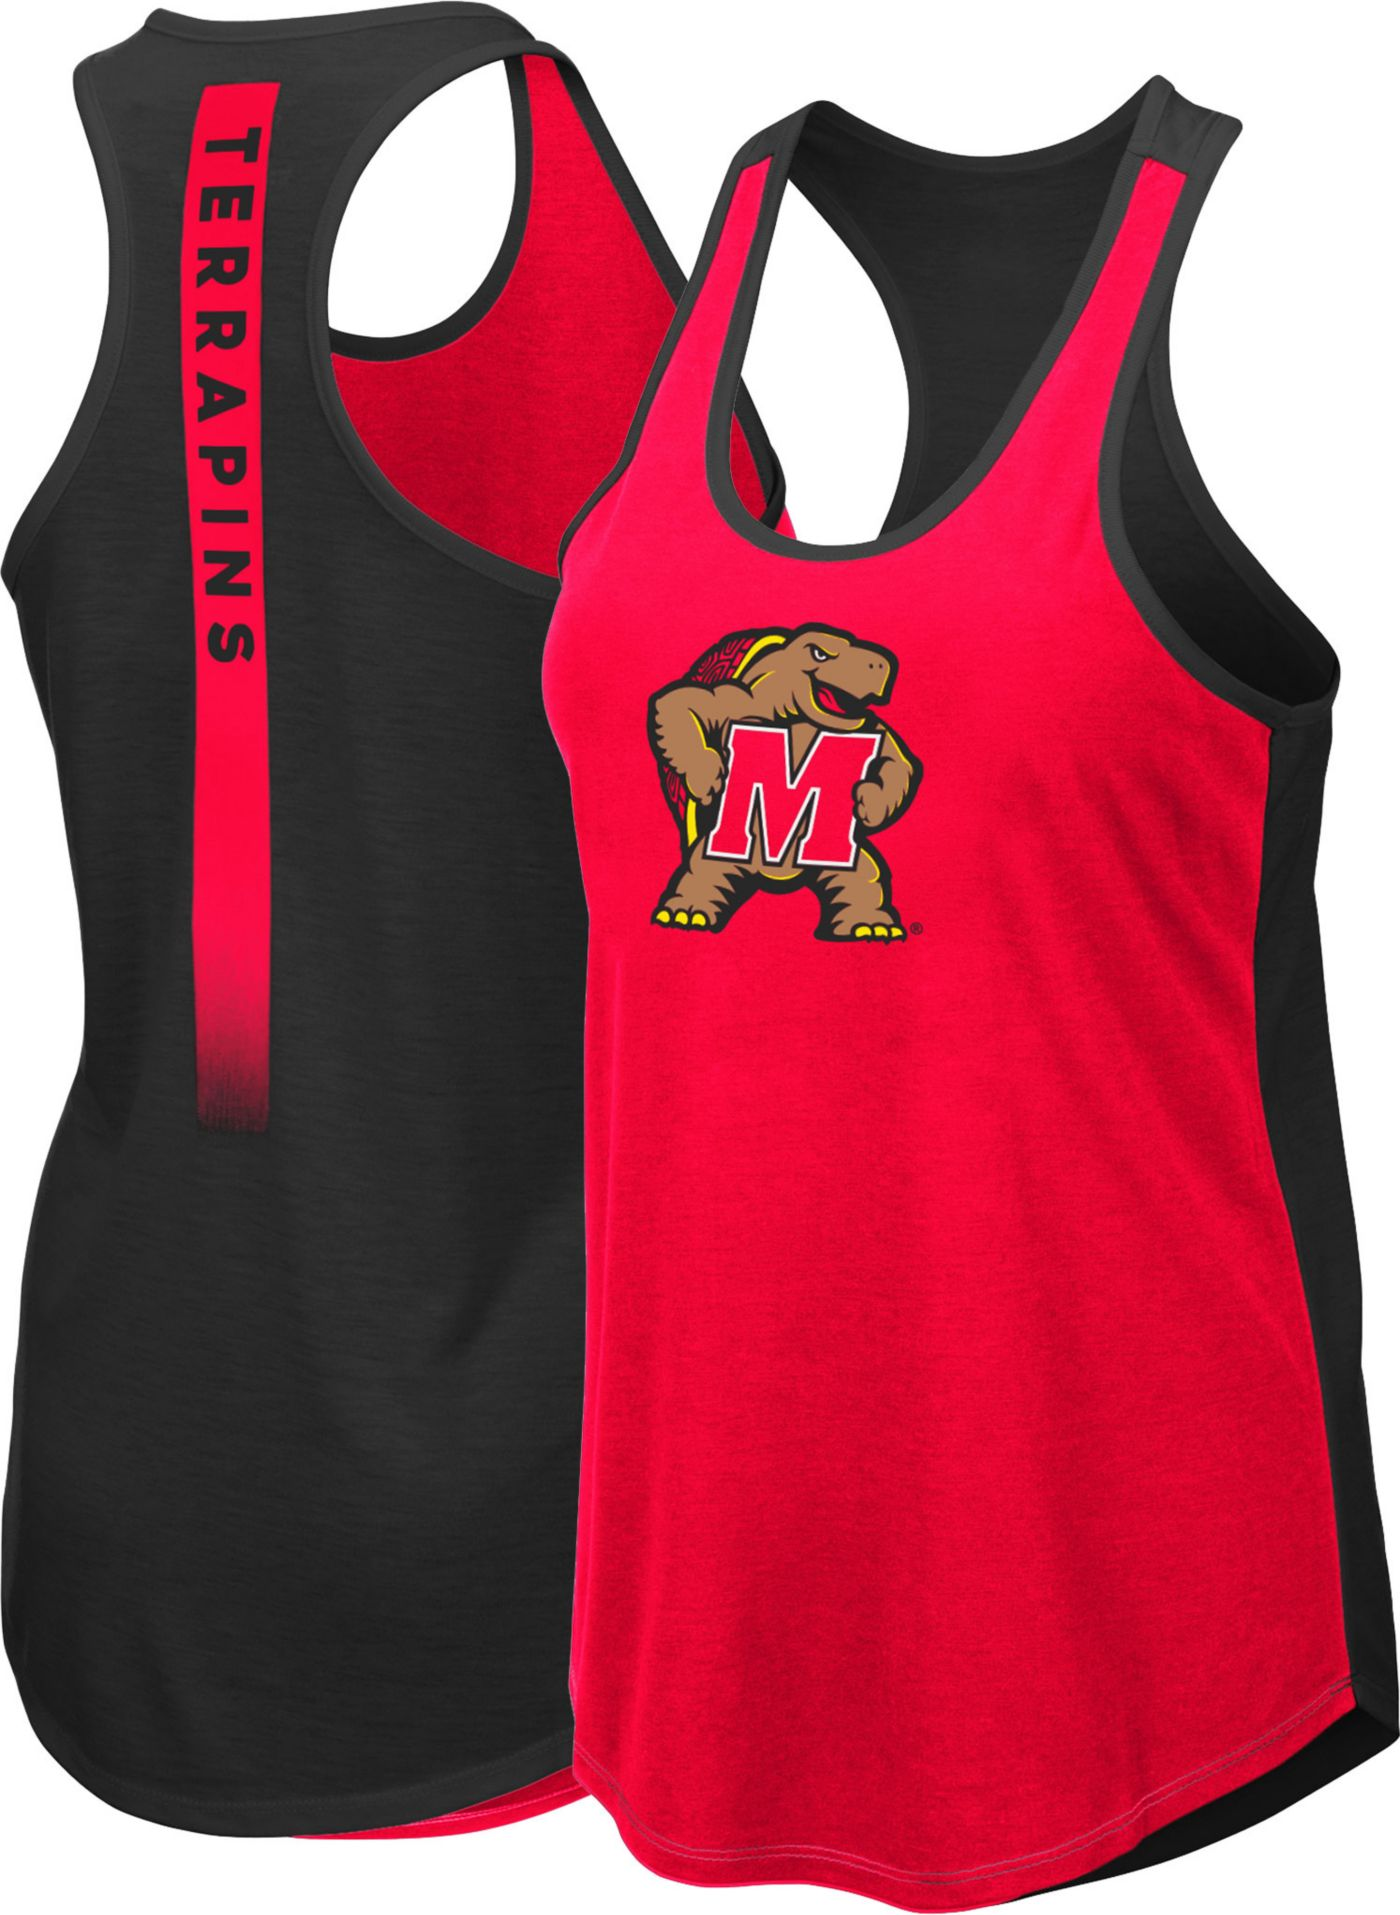 Colosseum Women's Maryland Terrapins Red/Black Publicist Tank Top